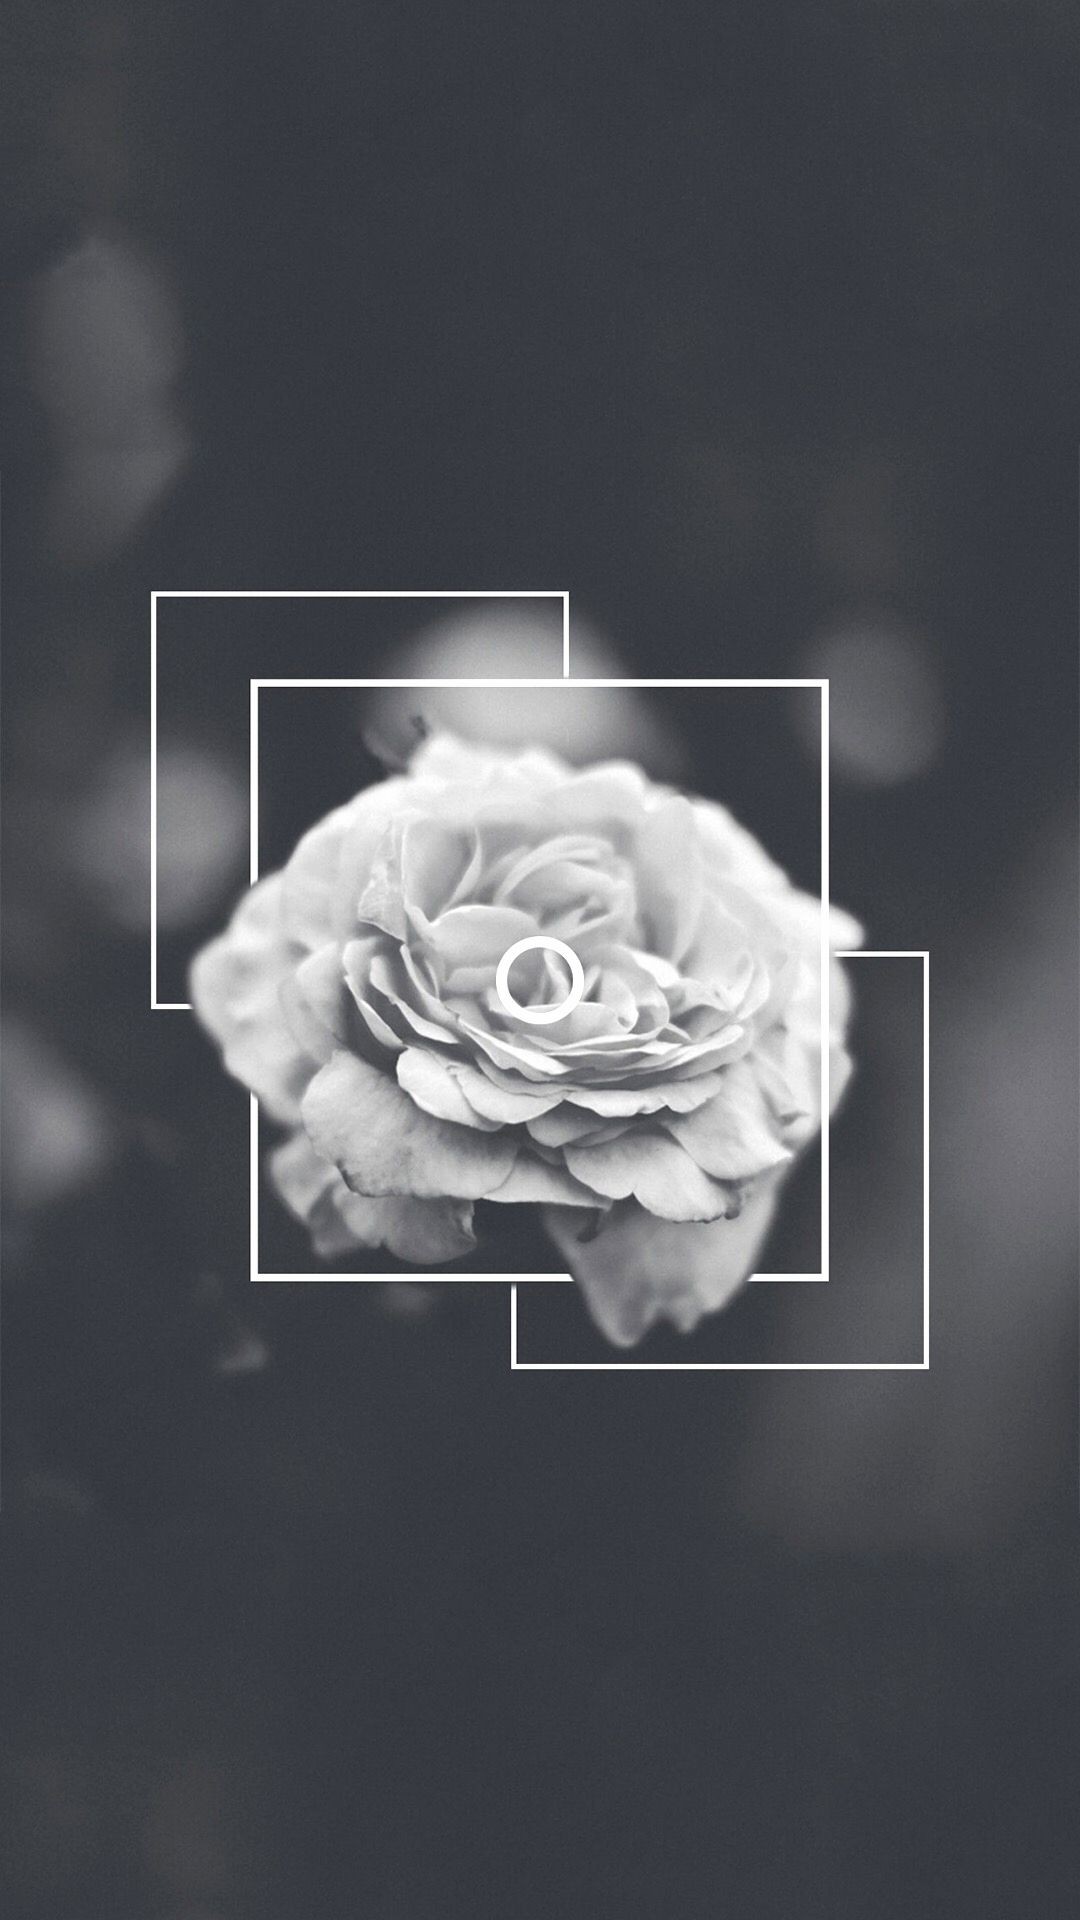 Aesthetic Black and White Wallpapers on ...